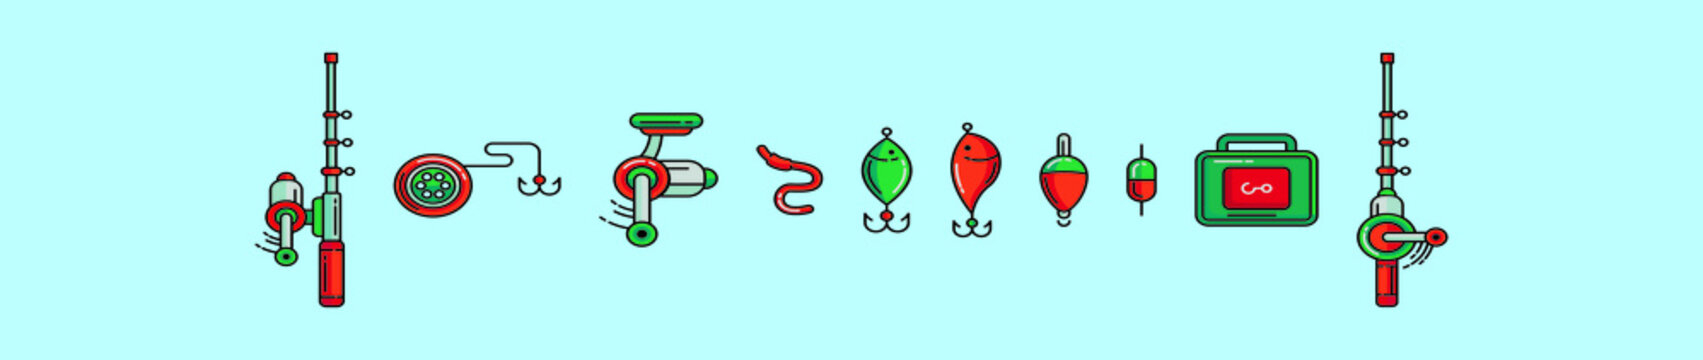 set of fishing tackle cartoon icon design template with various models. vector illustration isolated on blue background